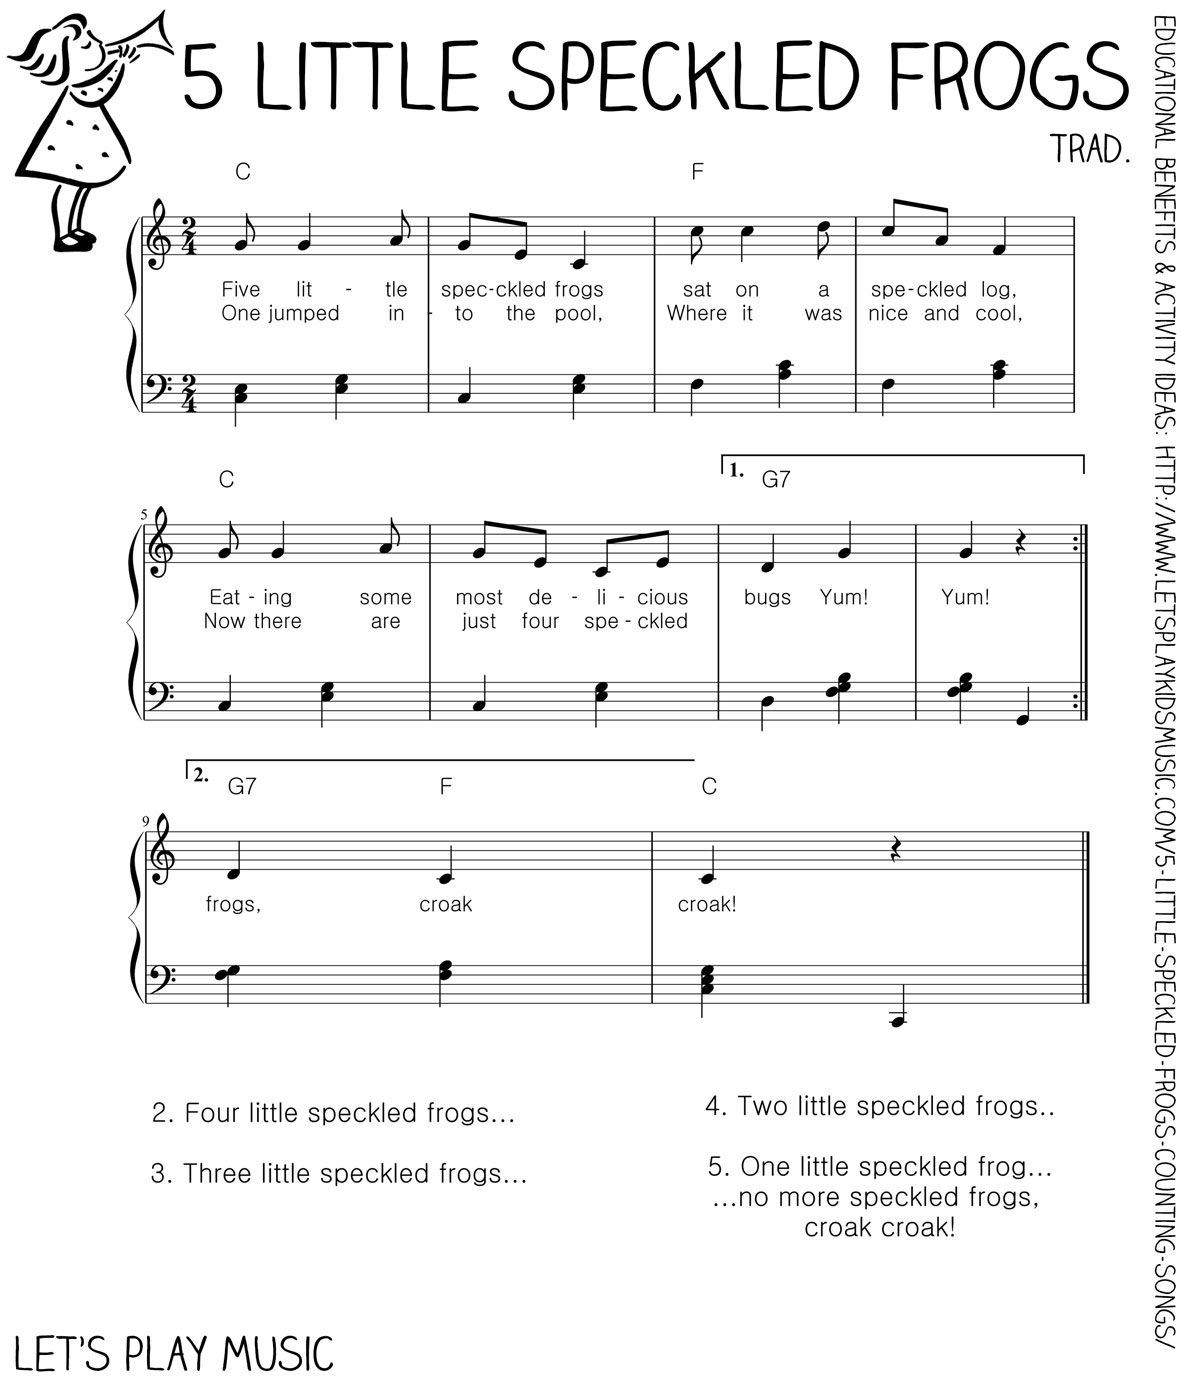 5 Little Speckled Frogs Counting Songs Free Sheet Music Sheet Music And Frogs